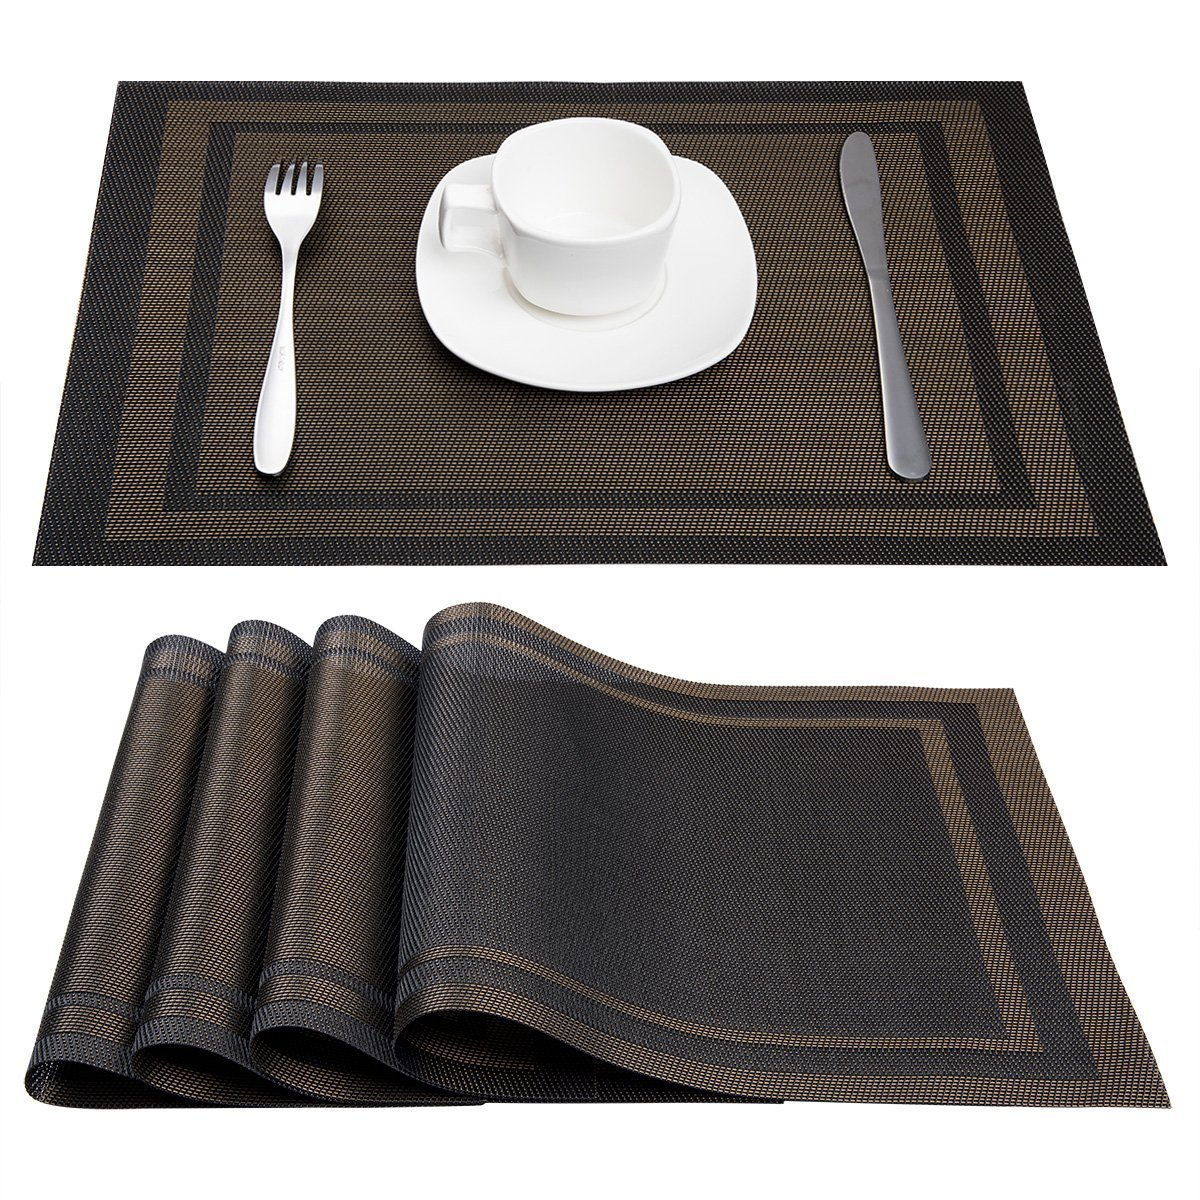 Contemporary amazon.com: placemats, artand heat-resistant placemats stain resistant  anti-skid washable pvc table mats fyfzsjv